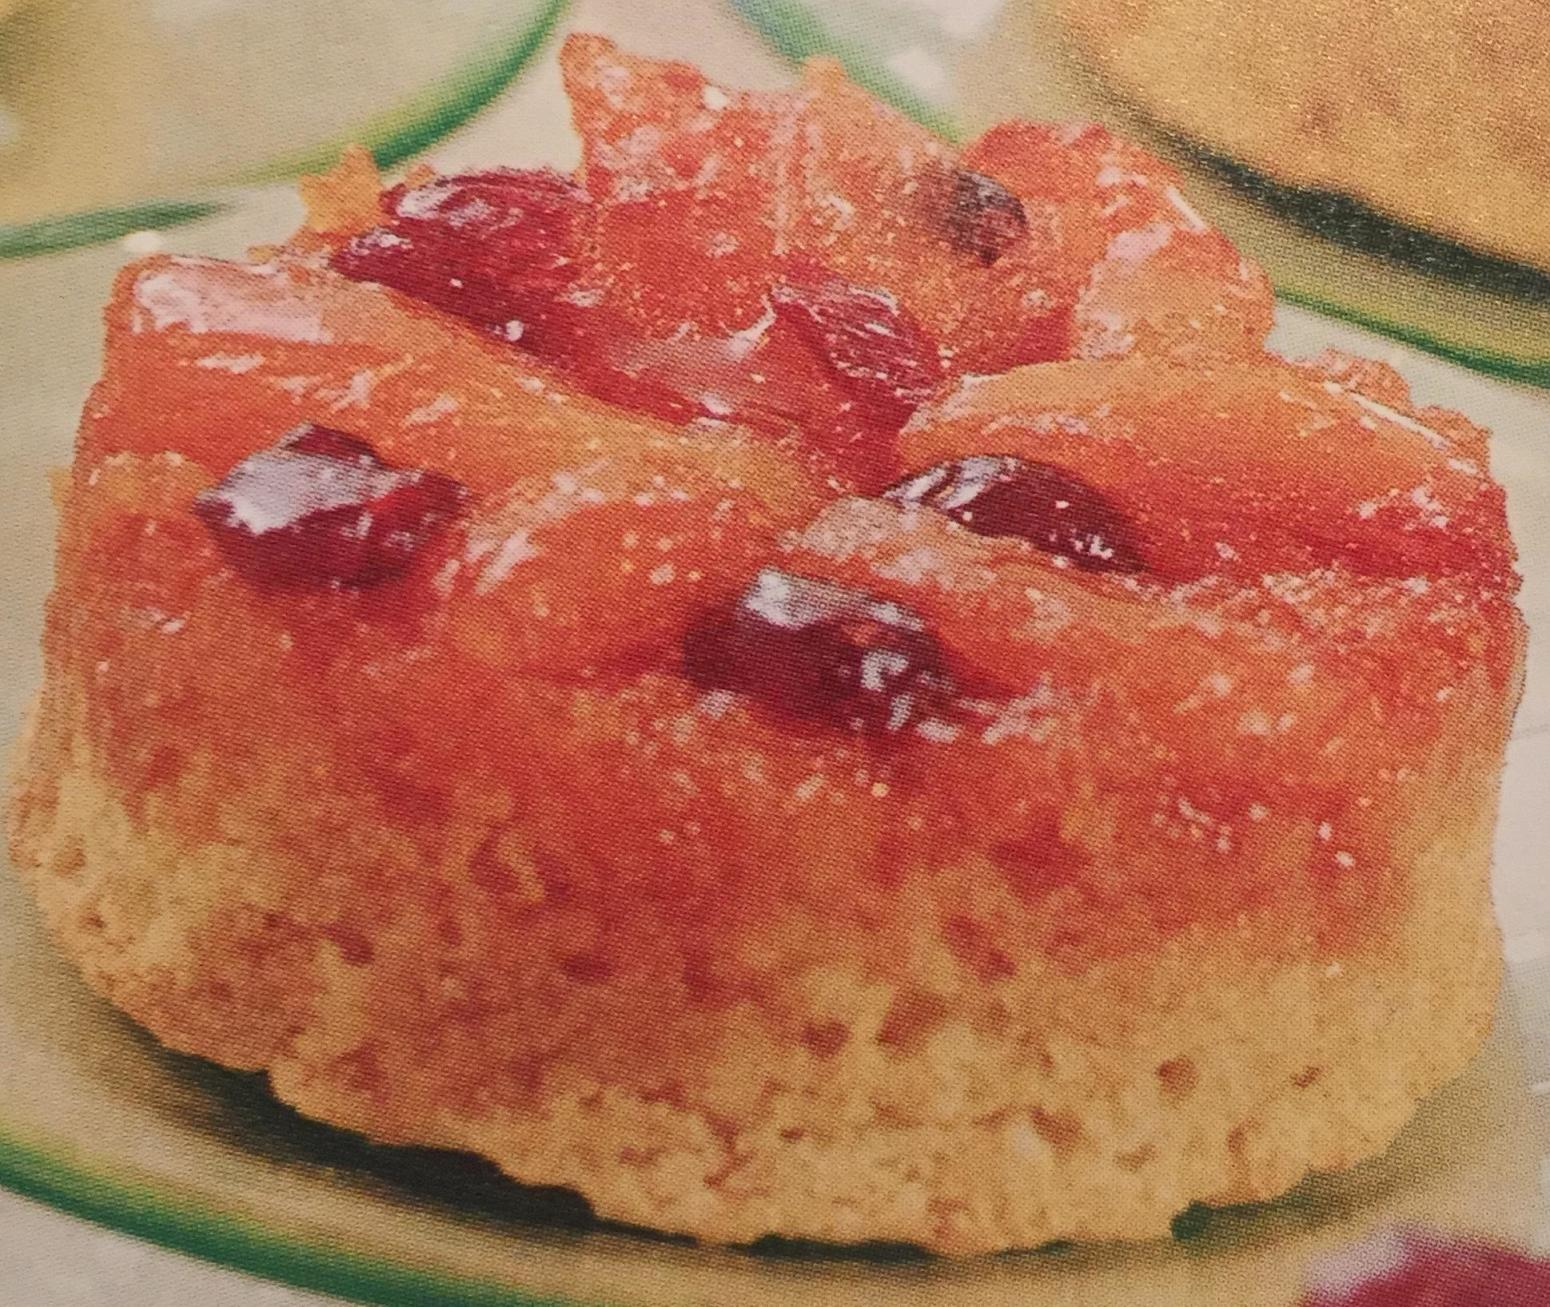 Dried Apricot & Cranberry Upside Down Cakes Recipe | Just A Pinch ...